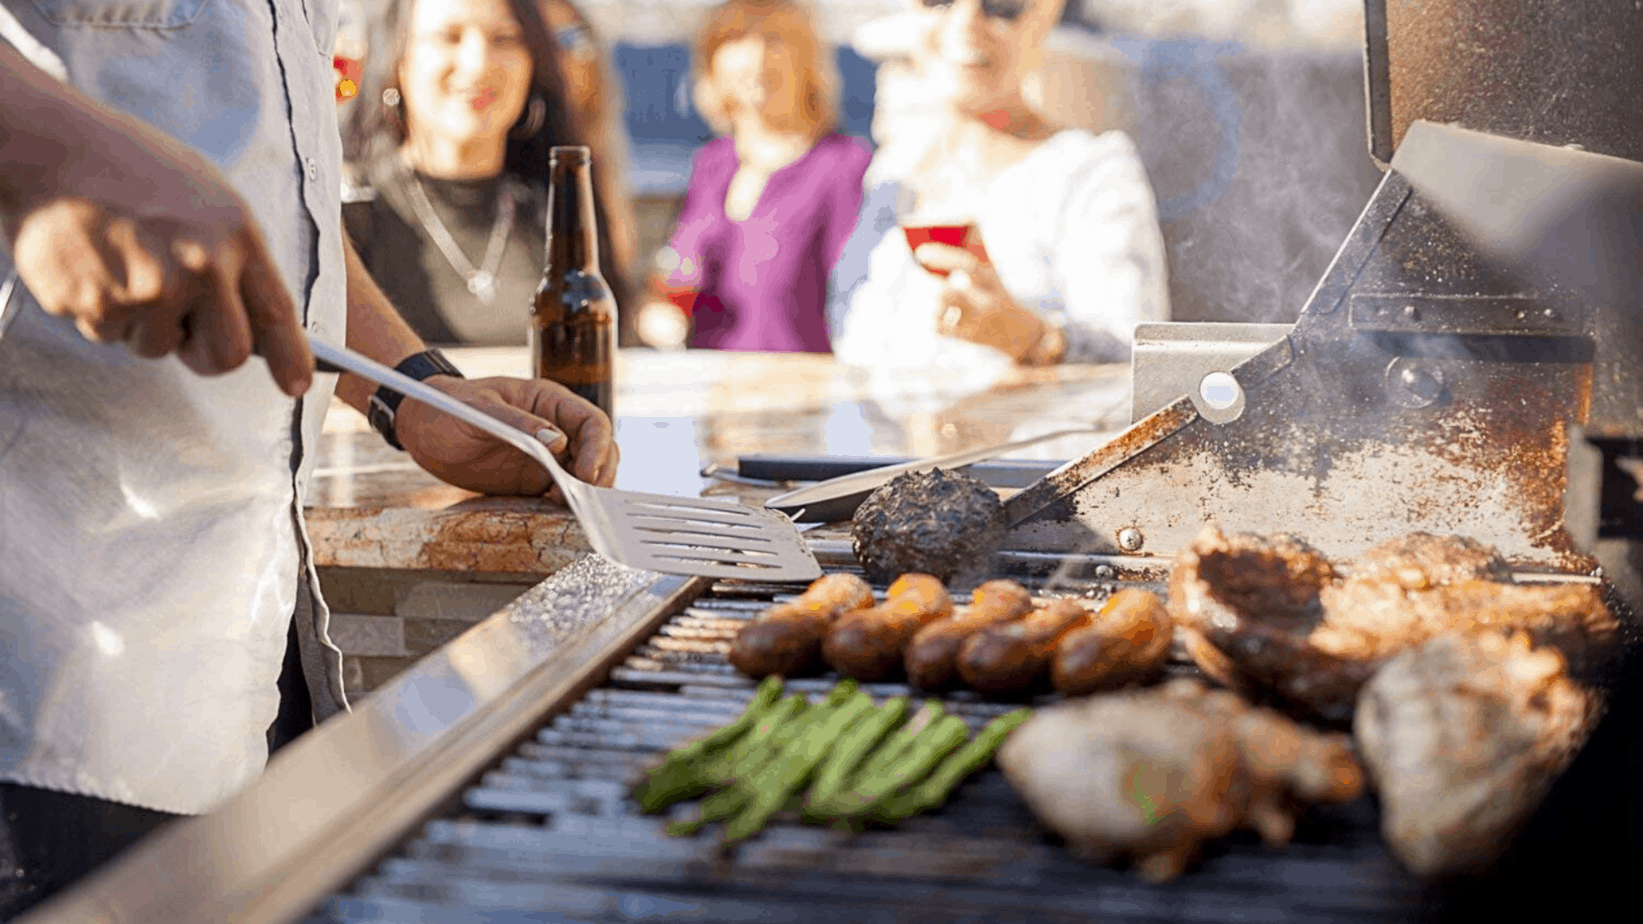 image of man using spatula to turn meat and veggies on grill